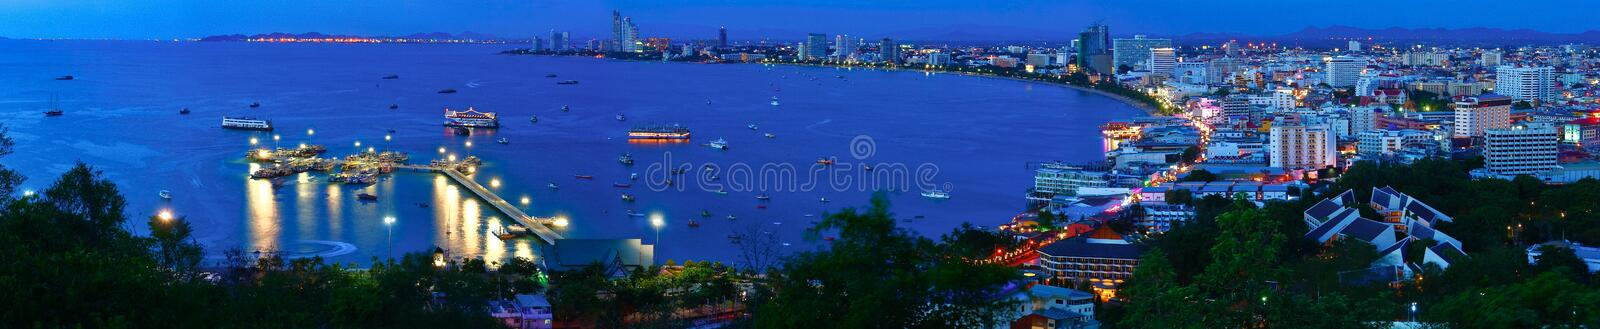 Night view panorama of Pattaya city, Thailand. Night view panorama of Pattaya city in Thailand royalty free stock photo